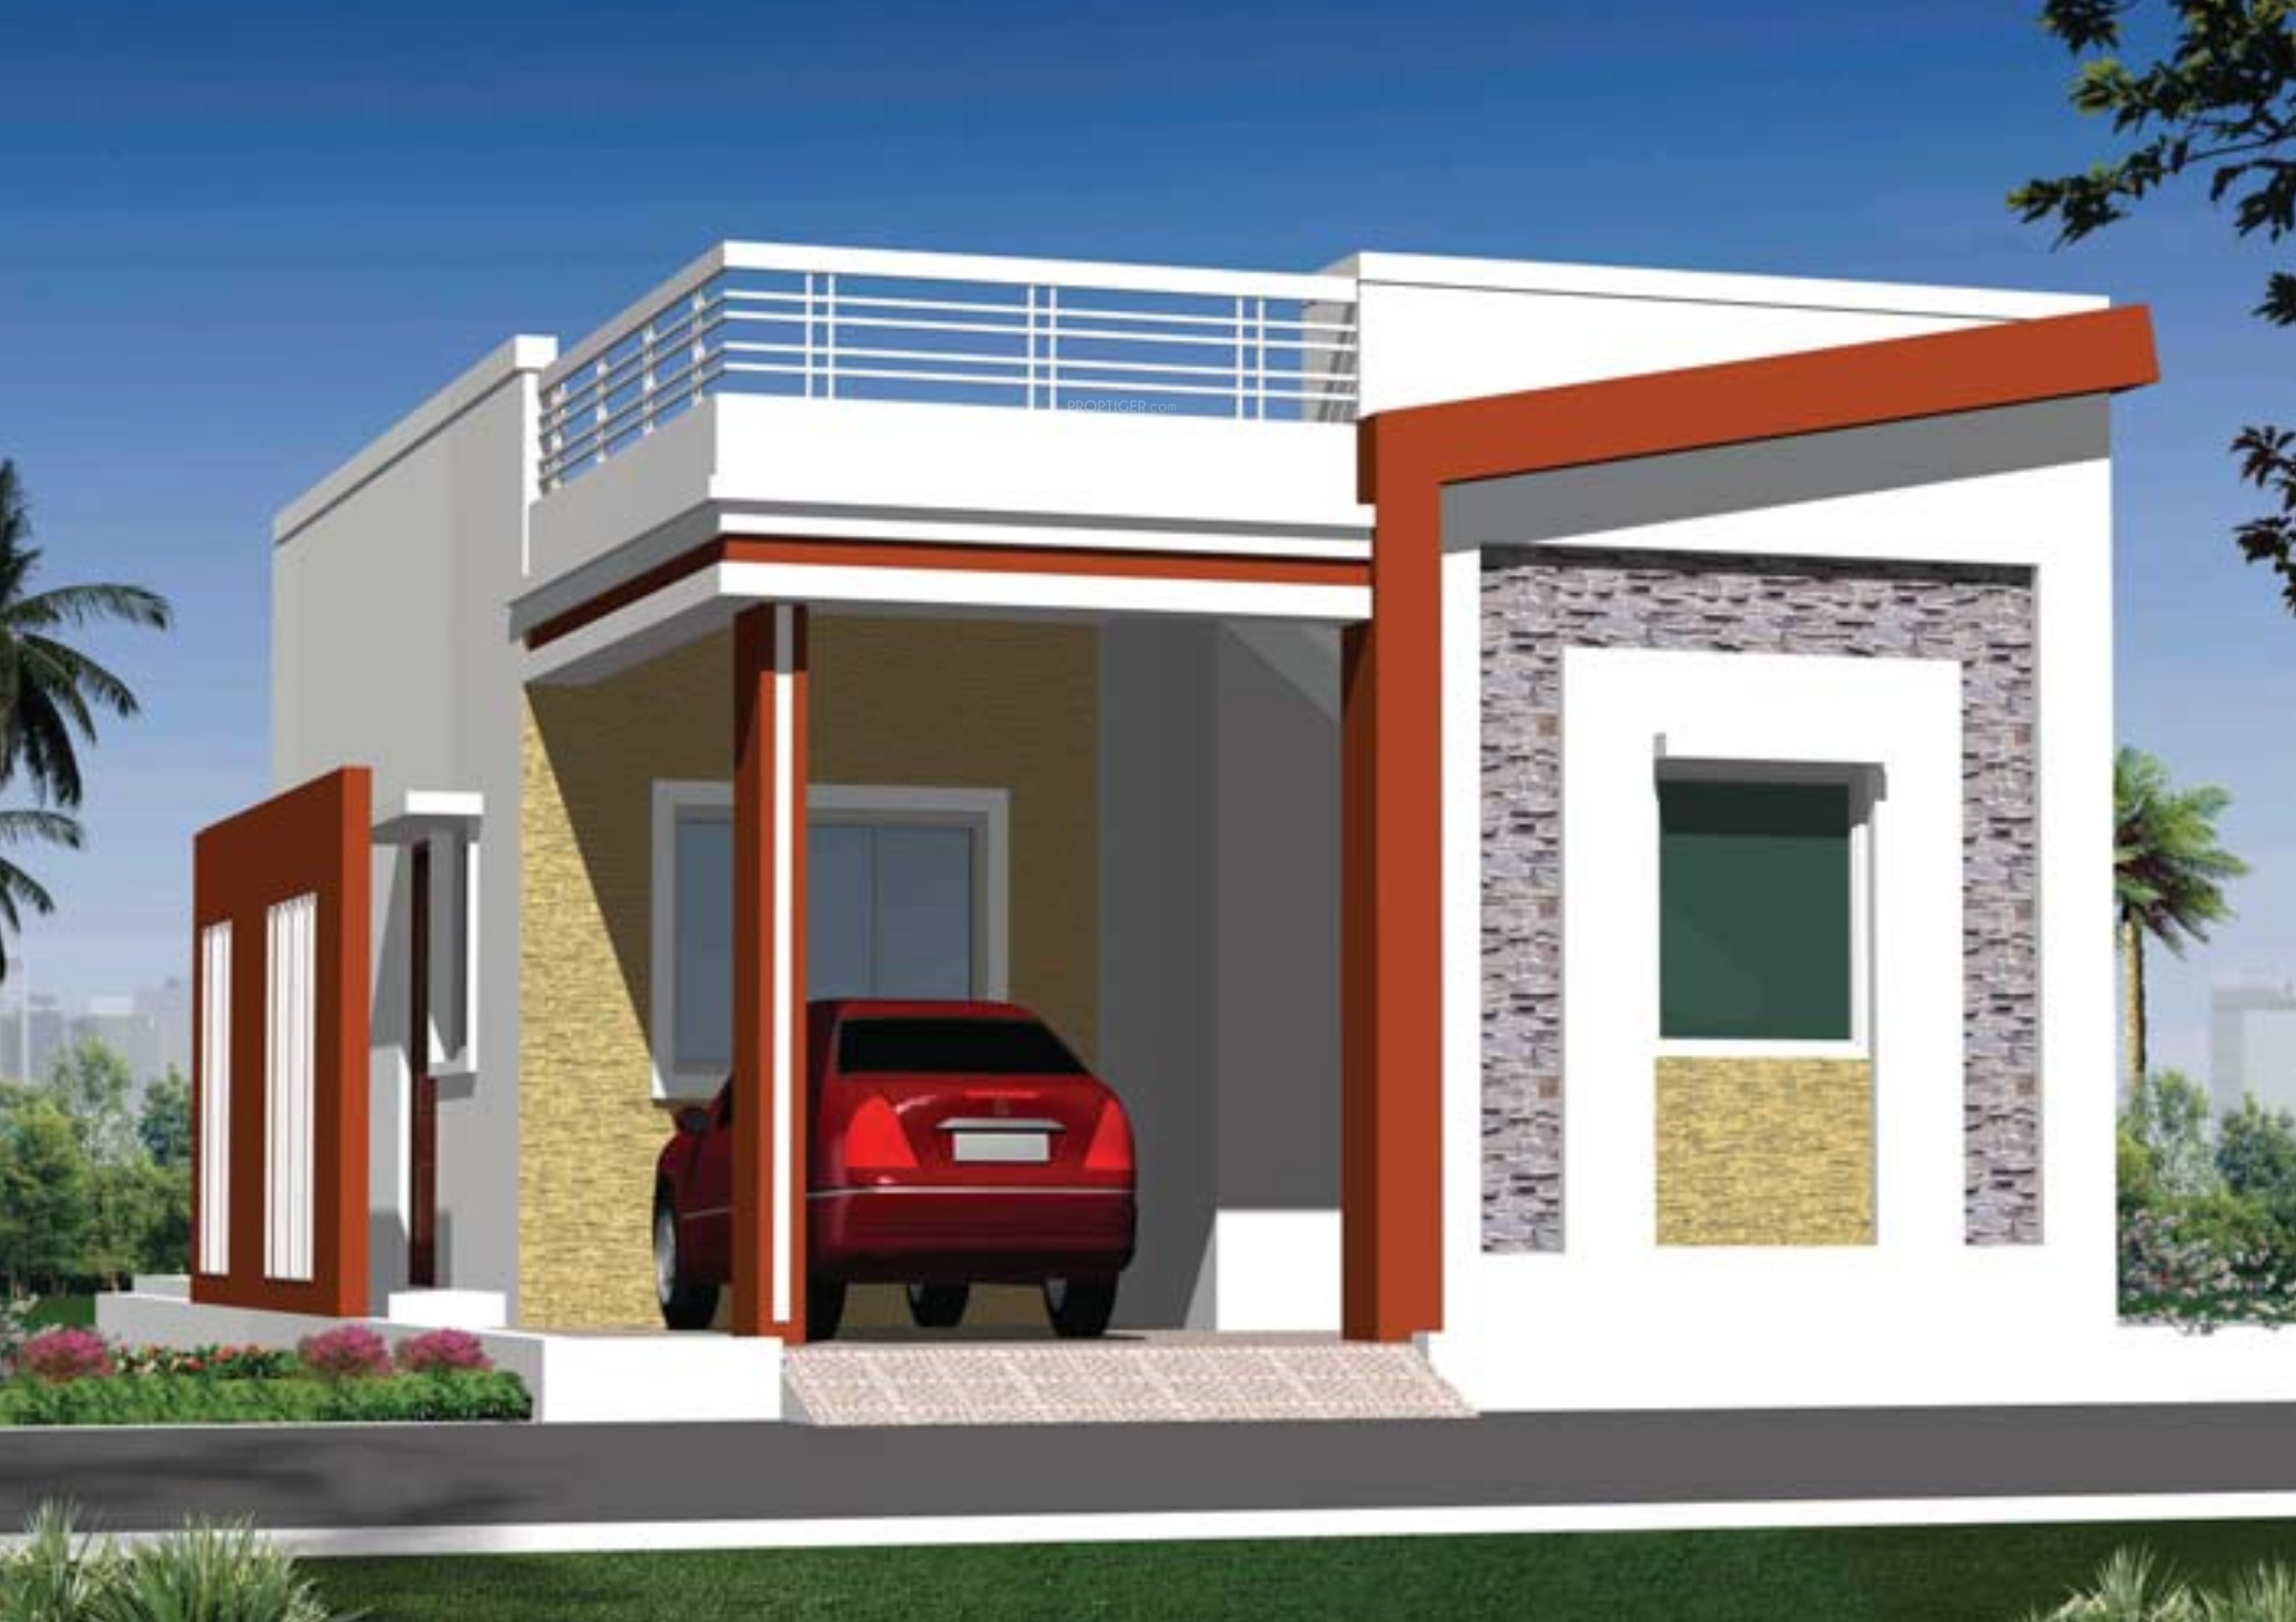 1062 sq ft 2 bhk floor plan image sai srushti sangamam for Four bhk bungalow plan